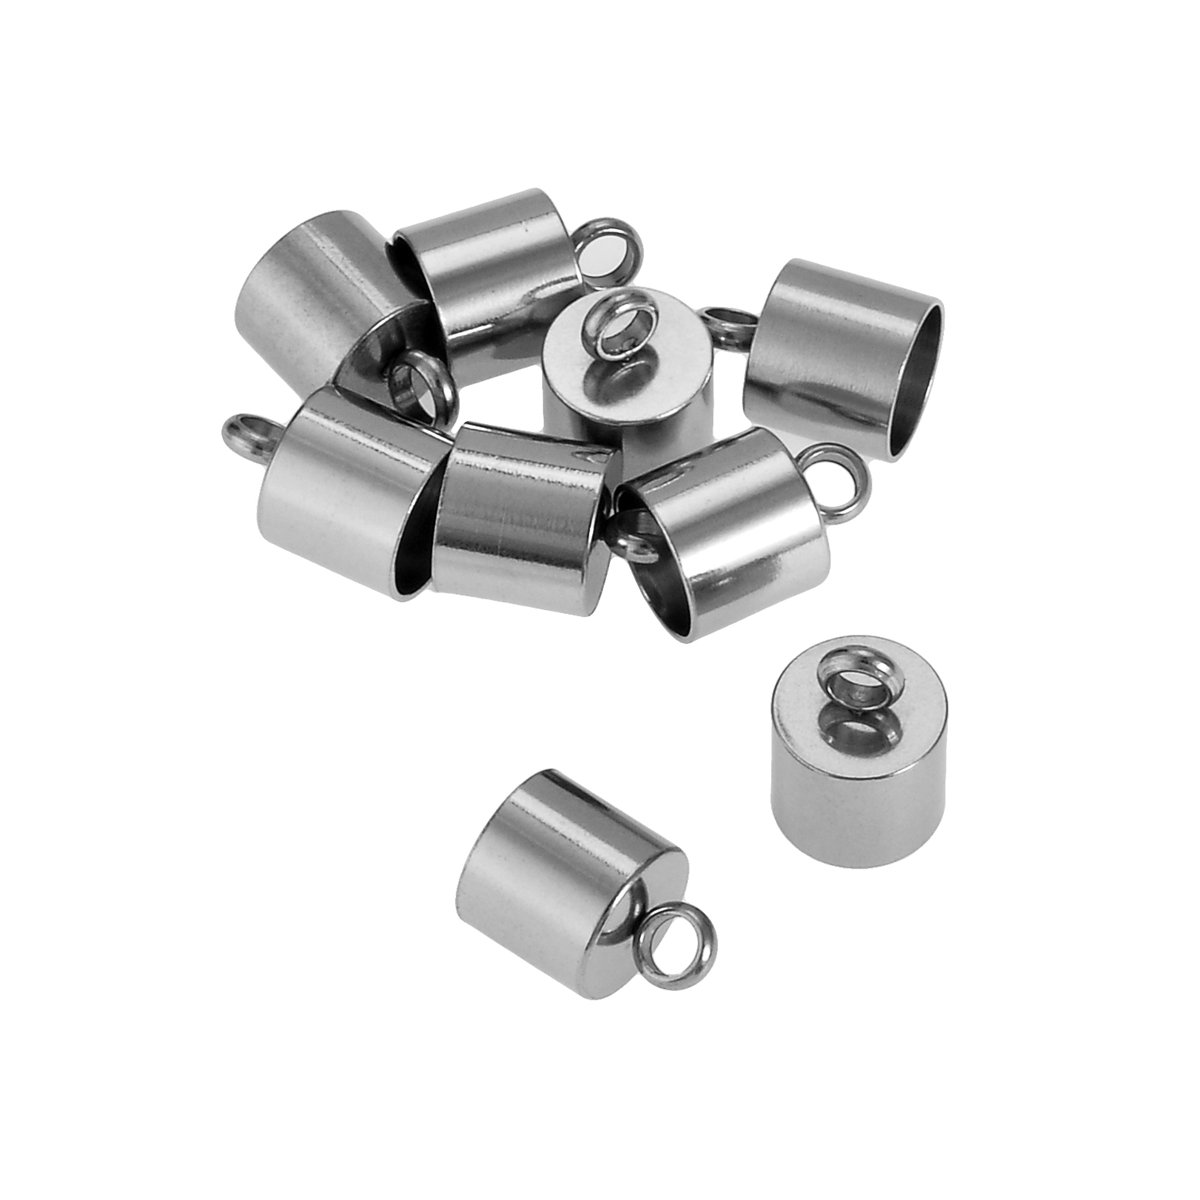 VALYRIA 10pcs Stainless Steel Smooth Cord End Crimps Finding DIY Supplies,11.6mmx9mm